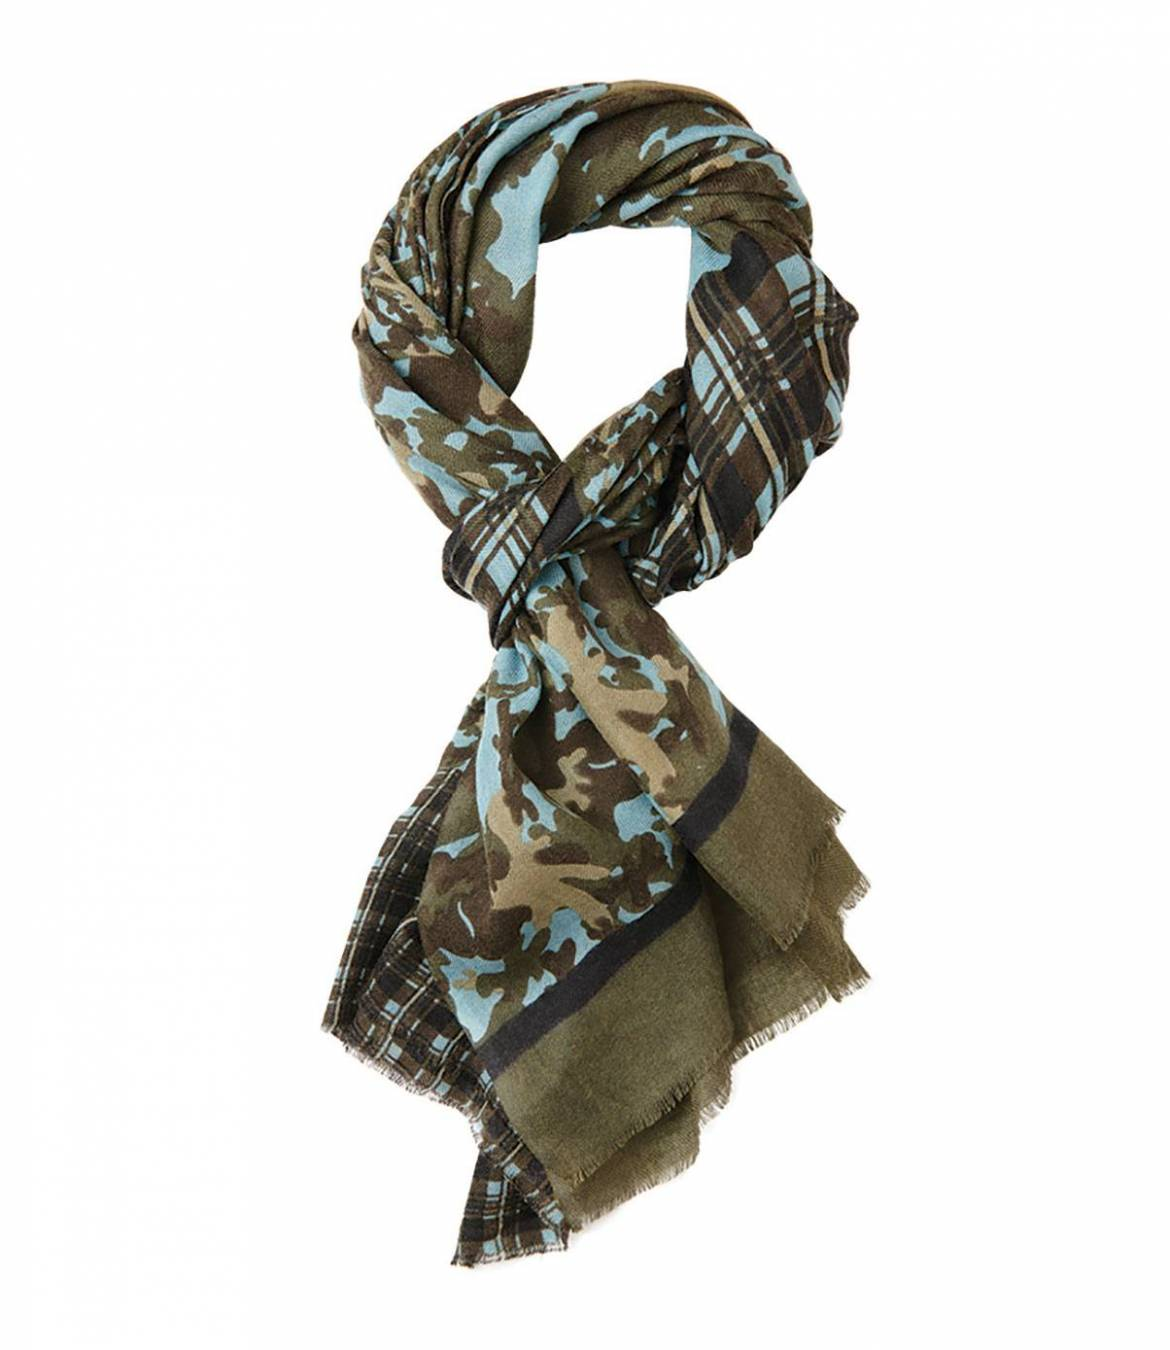 HEROIC Men's Wool Scarf 80x200 cm Storiatipic - 1